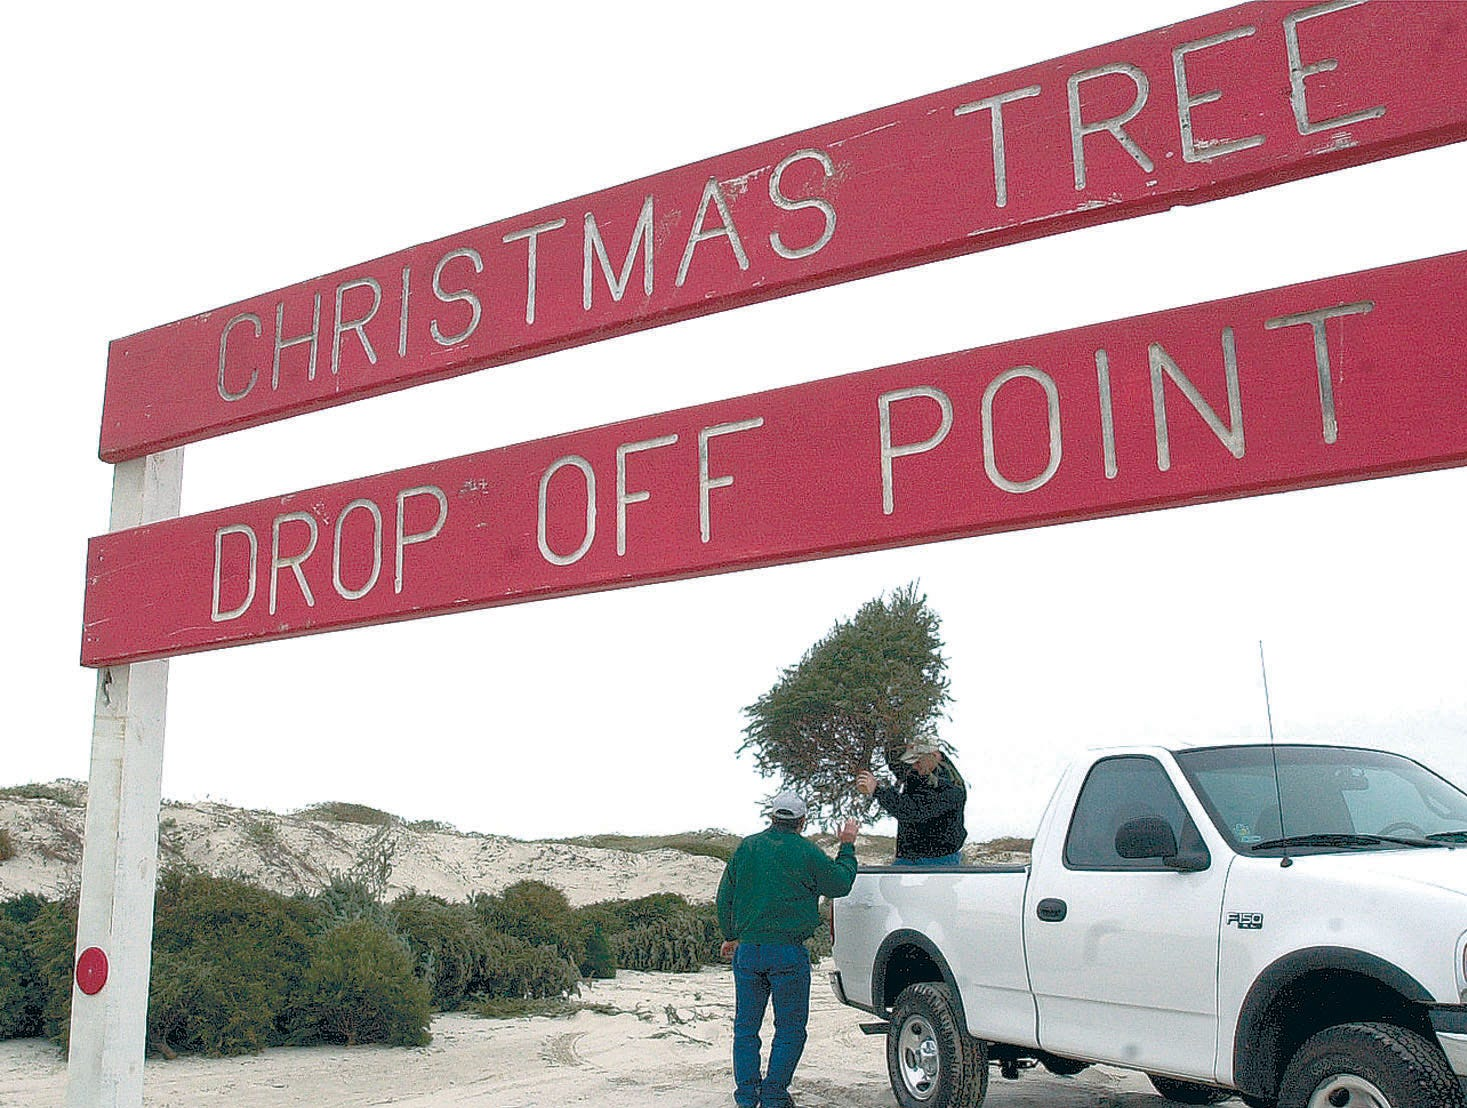 Christmas trees are discarded at one of the drop-off points on Zahn Road on Padre Island Jan. 2, 2001.